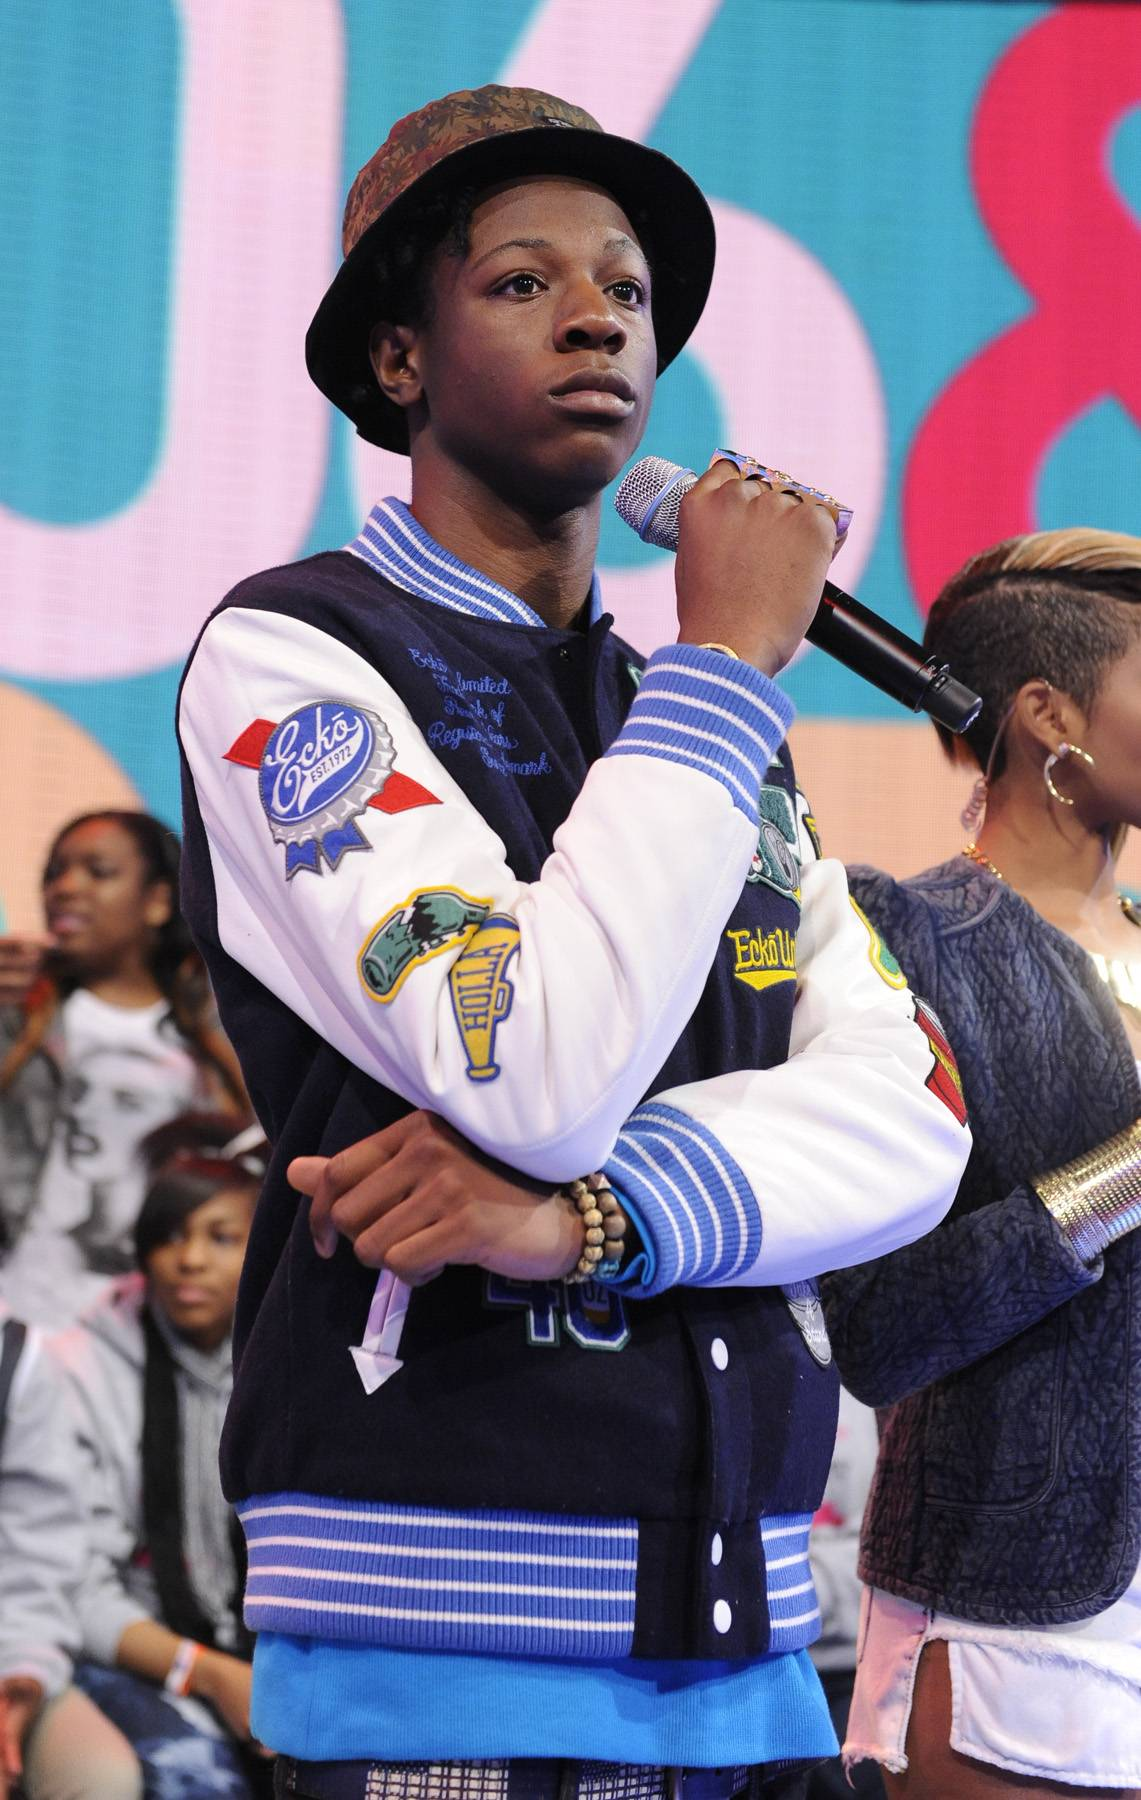 """Joey Badass,@joeyBADASS - Tweet: """"We didn't get arrested for anything drug-related don't let the media brainwash you... We got arrested for 'Walking While Black'""""Alongside TDE'sAb-Souland two members of rap crew Pro Era,Joeygot cuffed while on a tour stop in St. Louis Monday night. The badass Brooklynite straightens out crooked headlines that report the arrest was linked to that ooh-wee.(photo: John Ricard / BET)"""